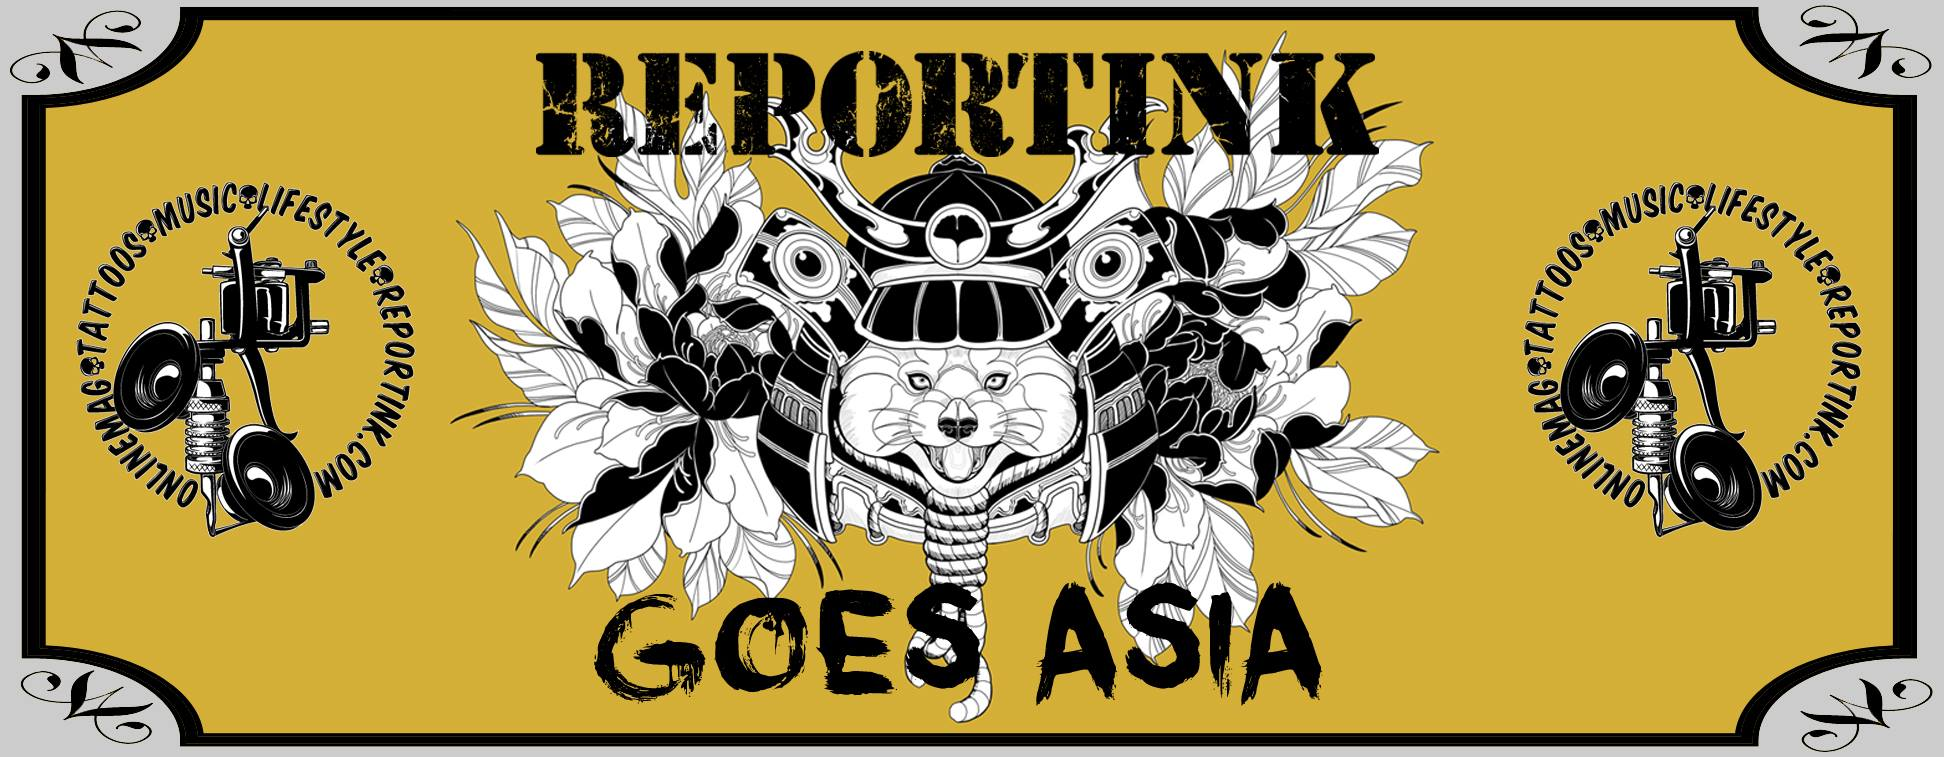 REPORTINK goes Asia - das große Special!